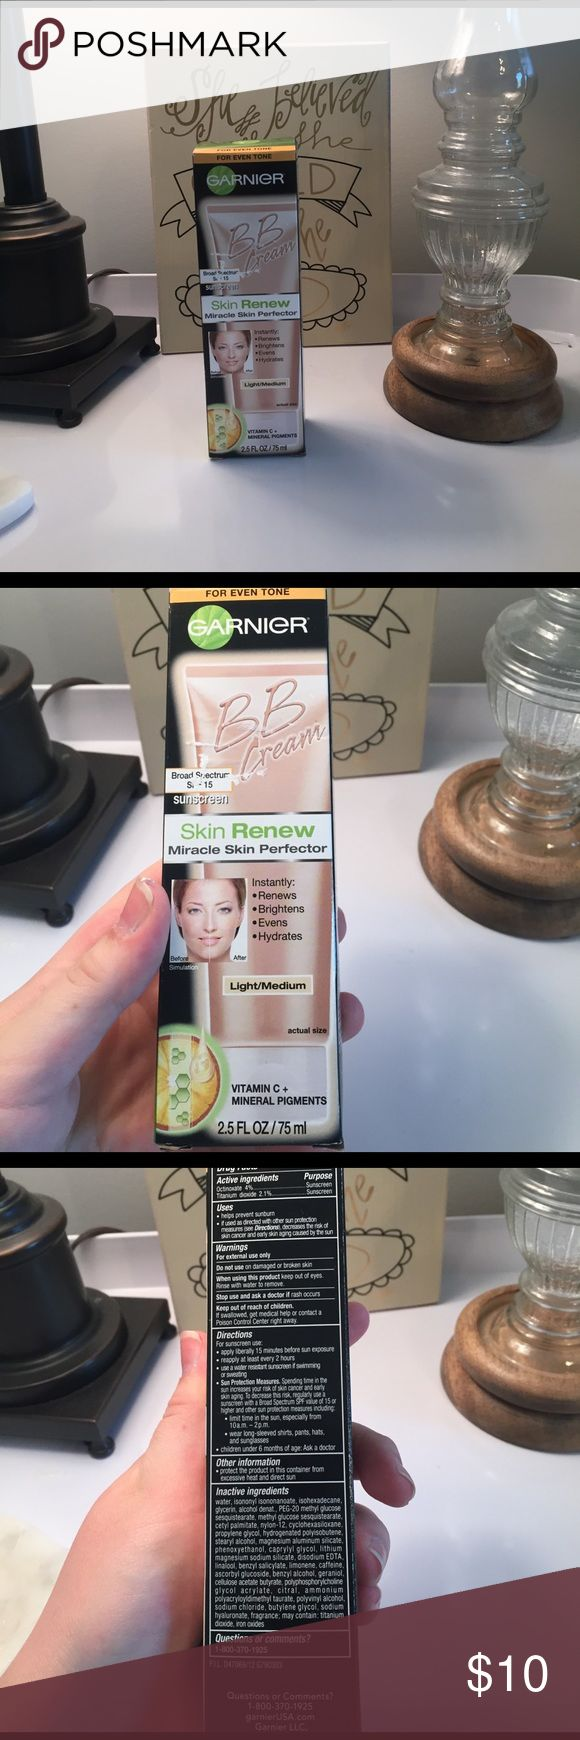 BRAND NEW Garnier BB Cream (Light/Medium) New, unopened Garnier BB Cream in Light/Medium. Thank you for stopping by! Comes from a smoke free home. Please feel free to make an offer. Happy Shopping! Garnier Makeup Foundation